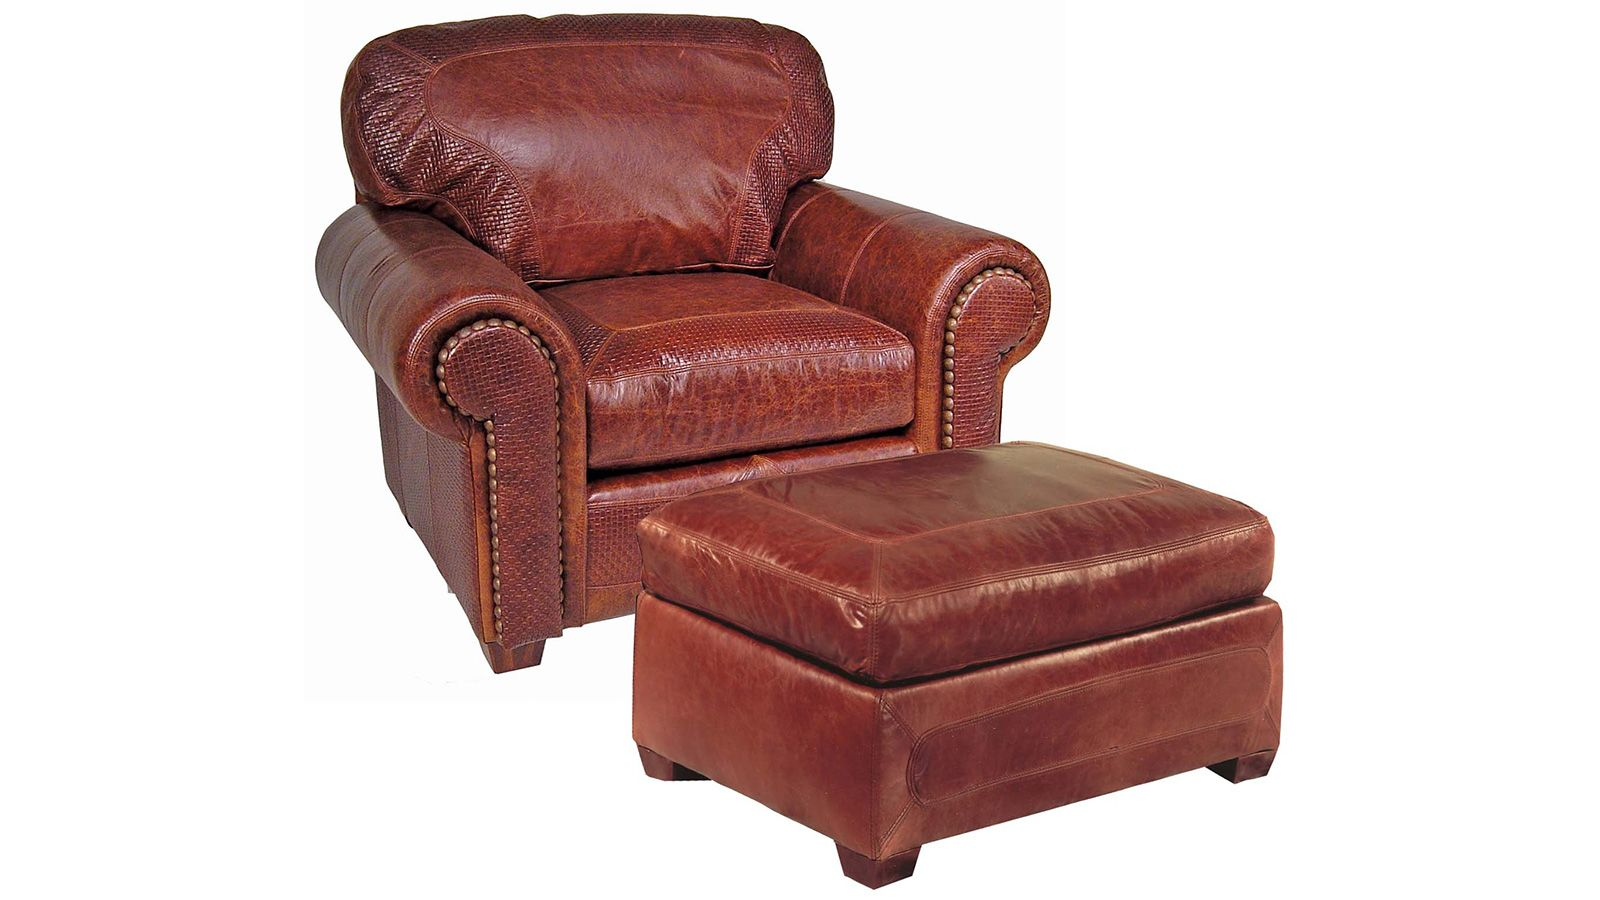 Stickley Santa Fe Chair & Ottoman